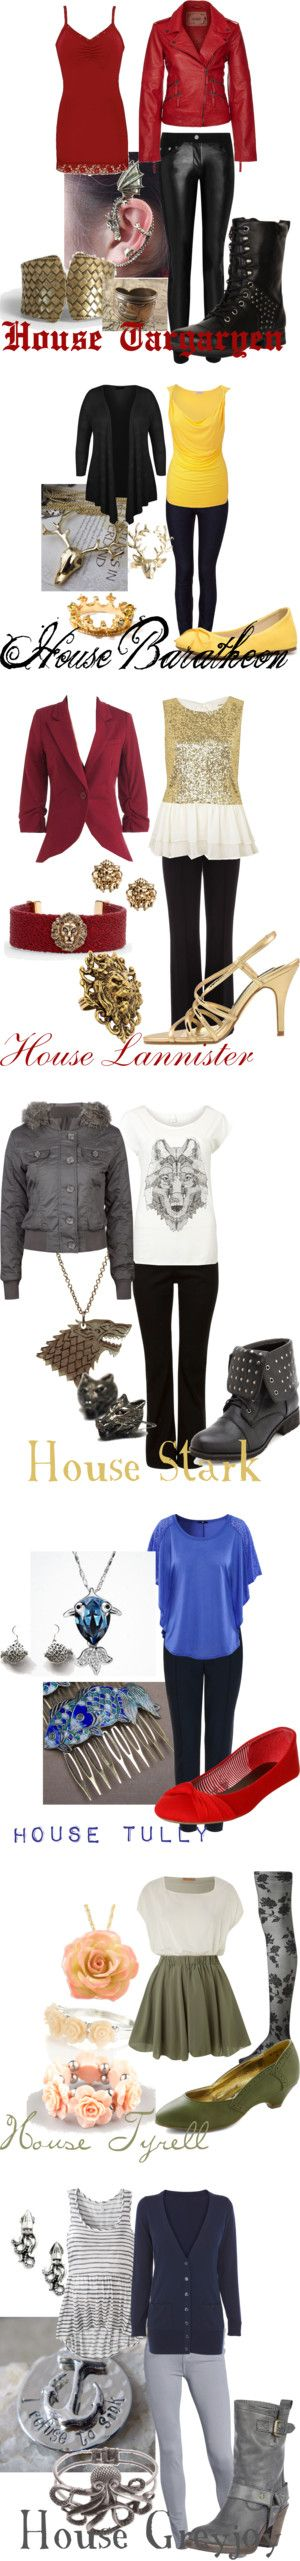 """Game of Thrones"" by ashley-jo-verity on Polyvore"